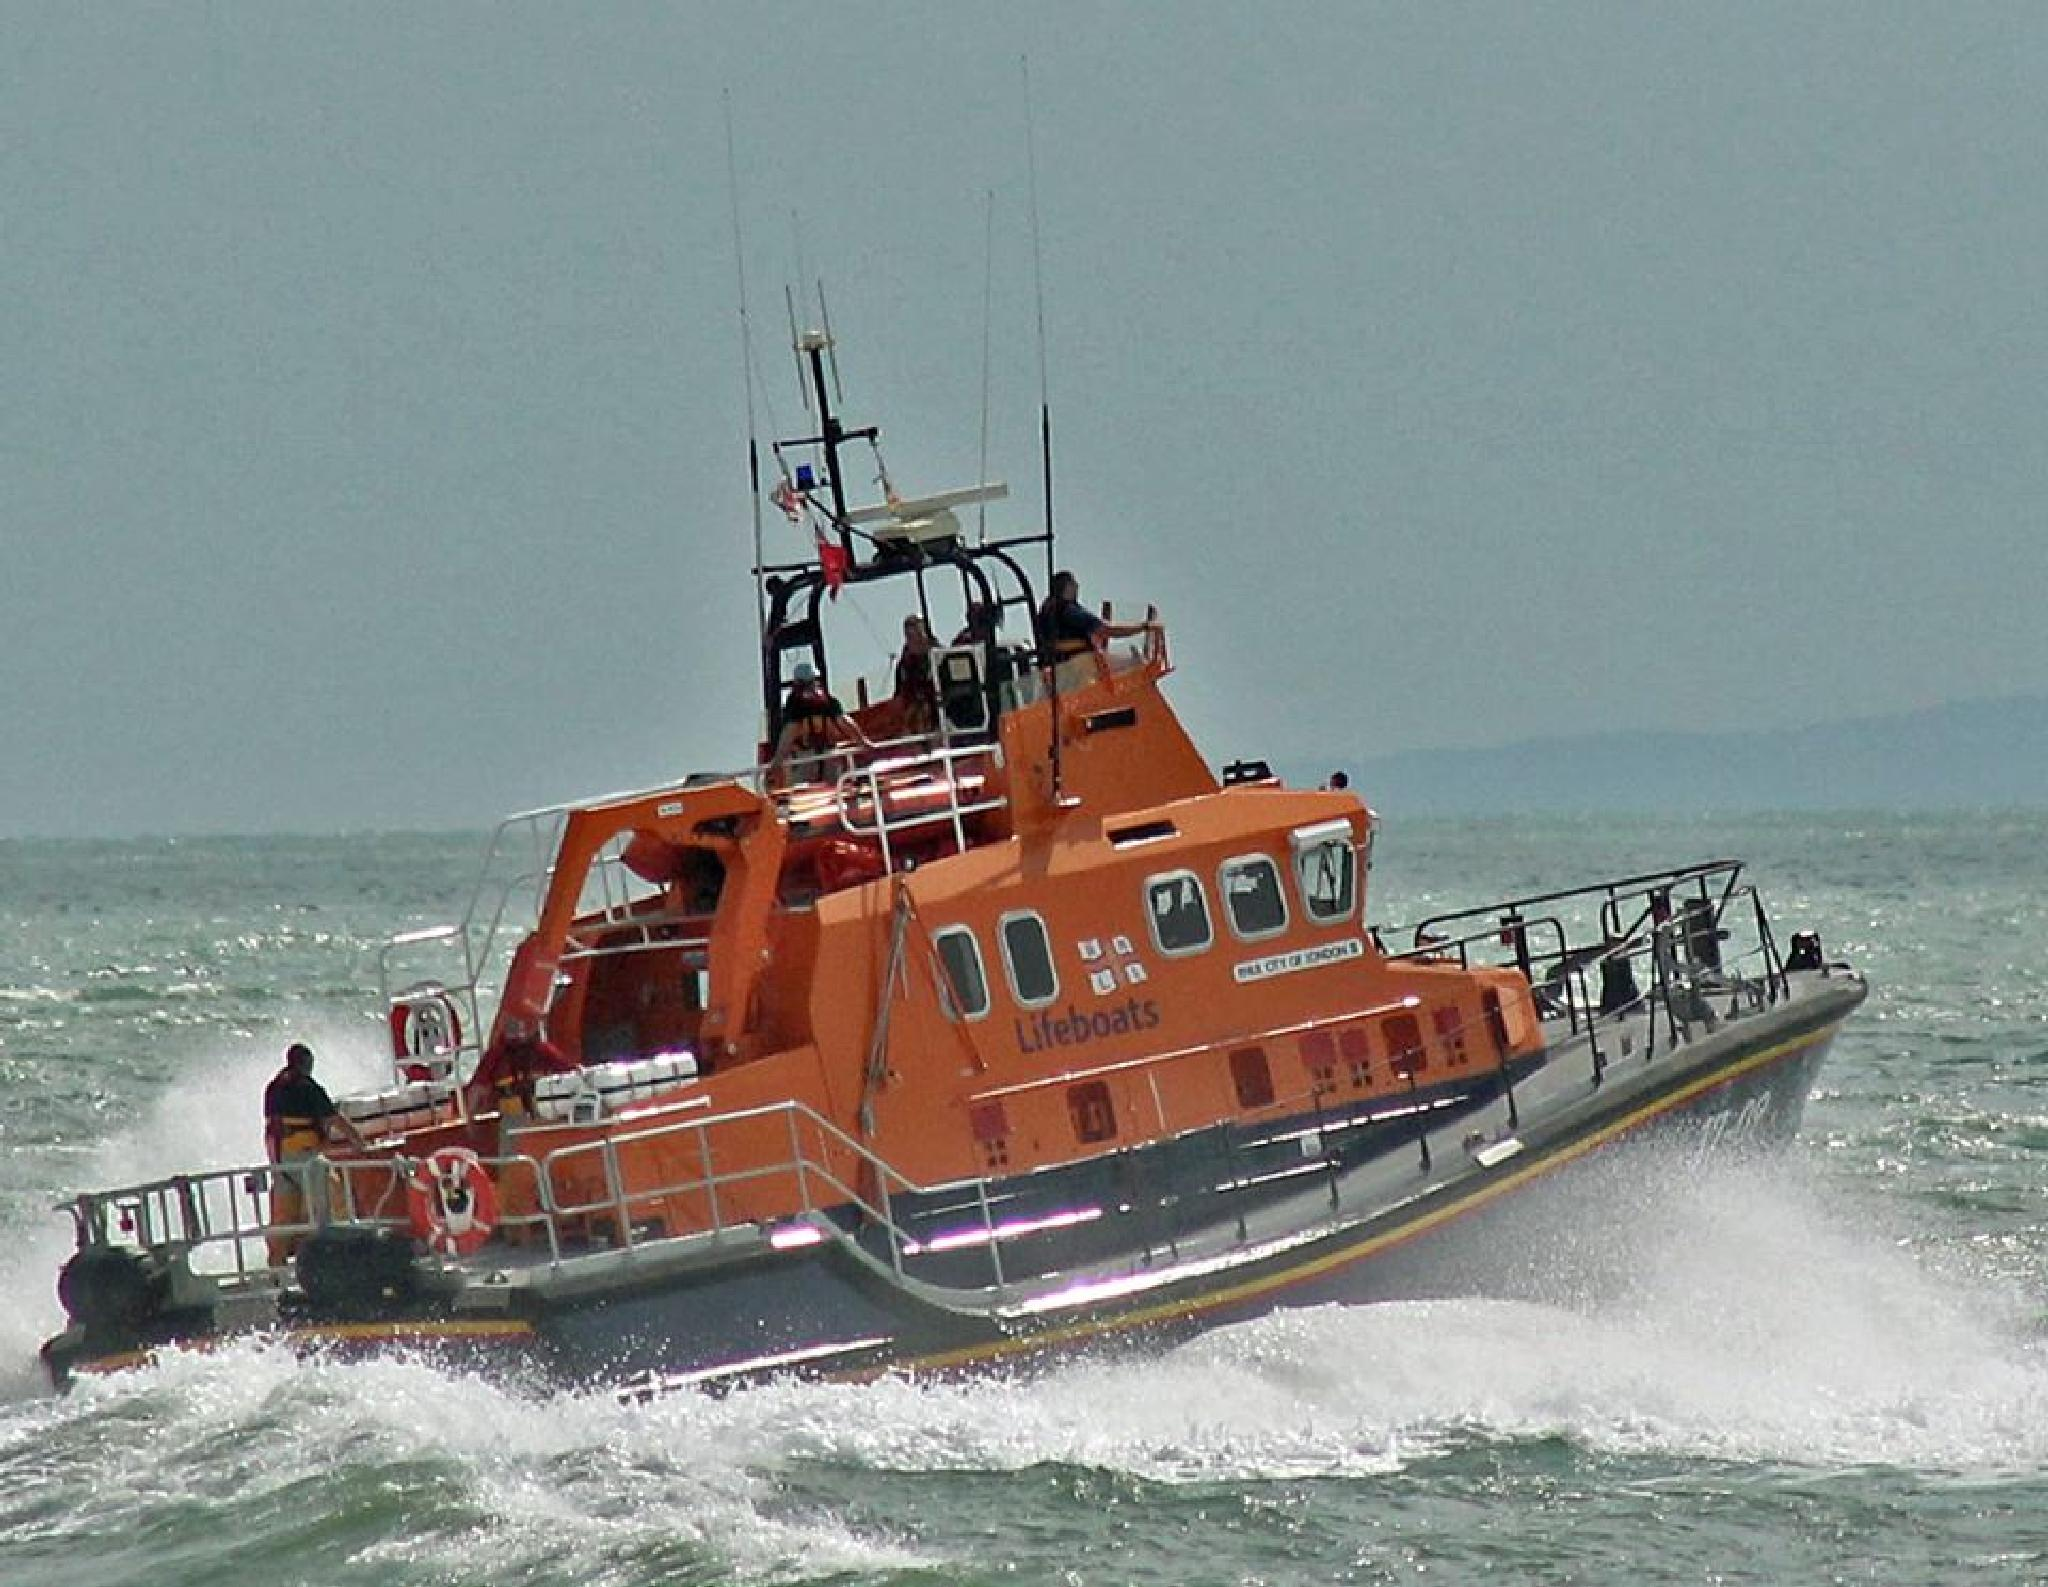 DOVER LIFEBOAT by mikewoodland21